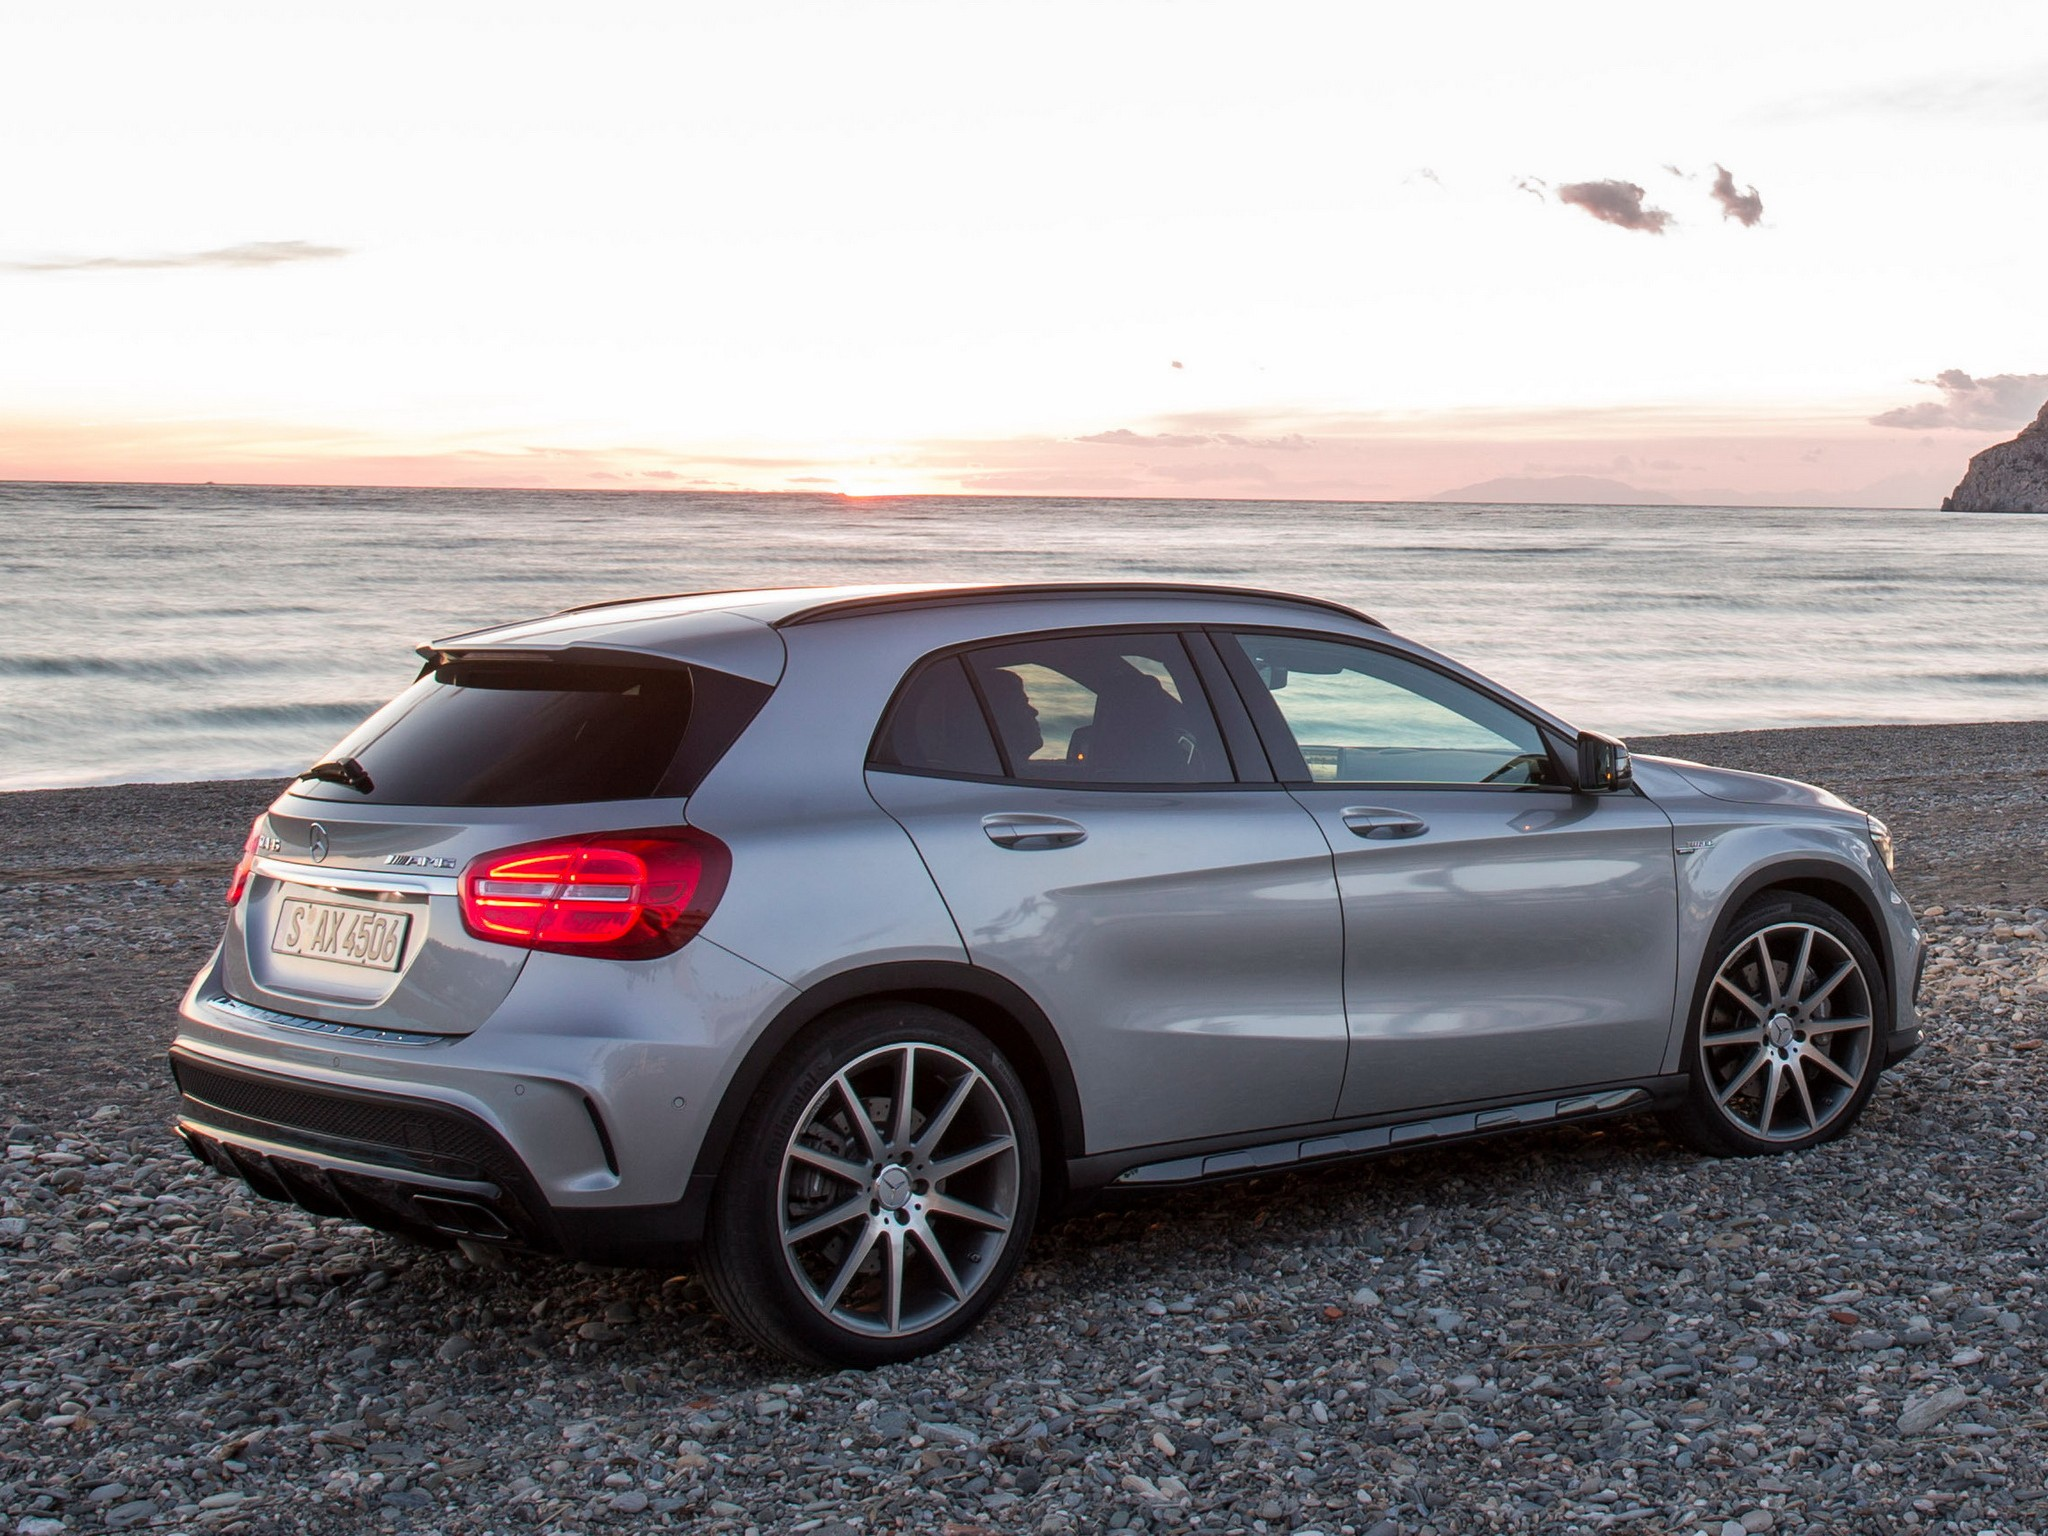 Mercedes benz gla 45 amg 4matic price in india for Mercedes benz gla india